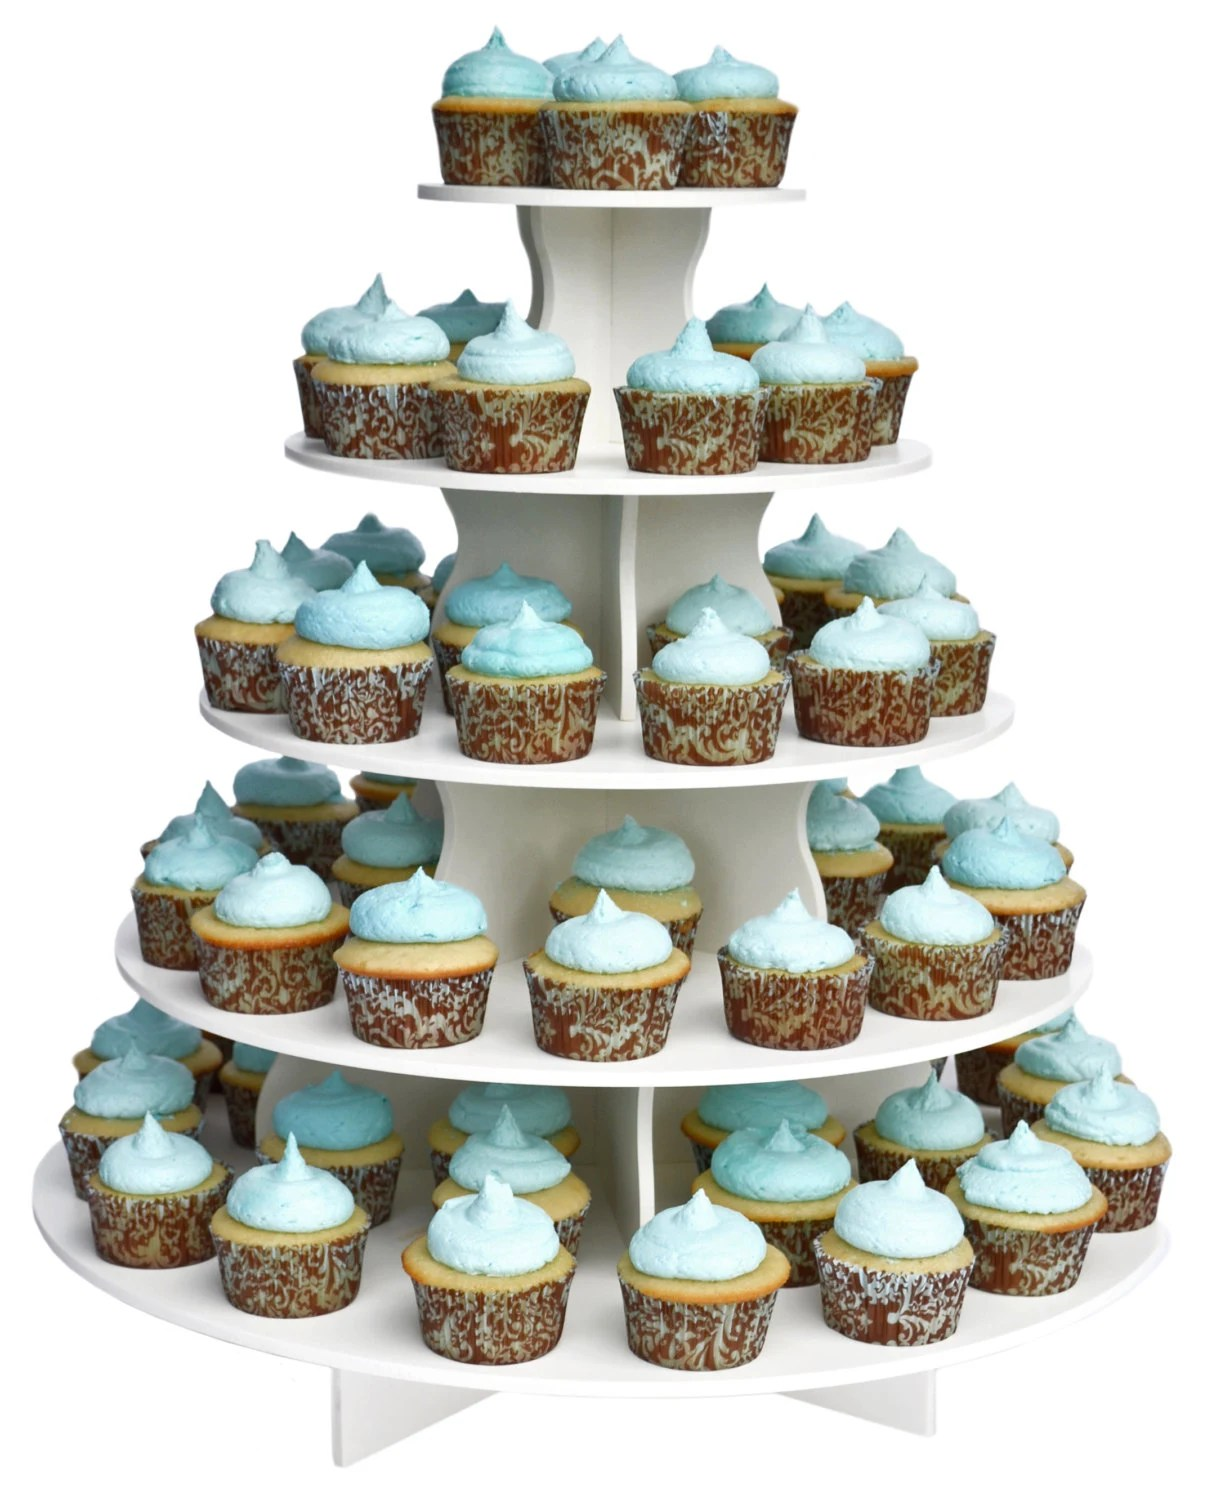 5 Tier Round Cupcake Tower StandReusable and Adjustable